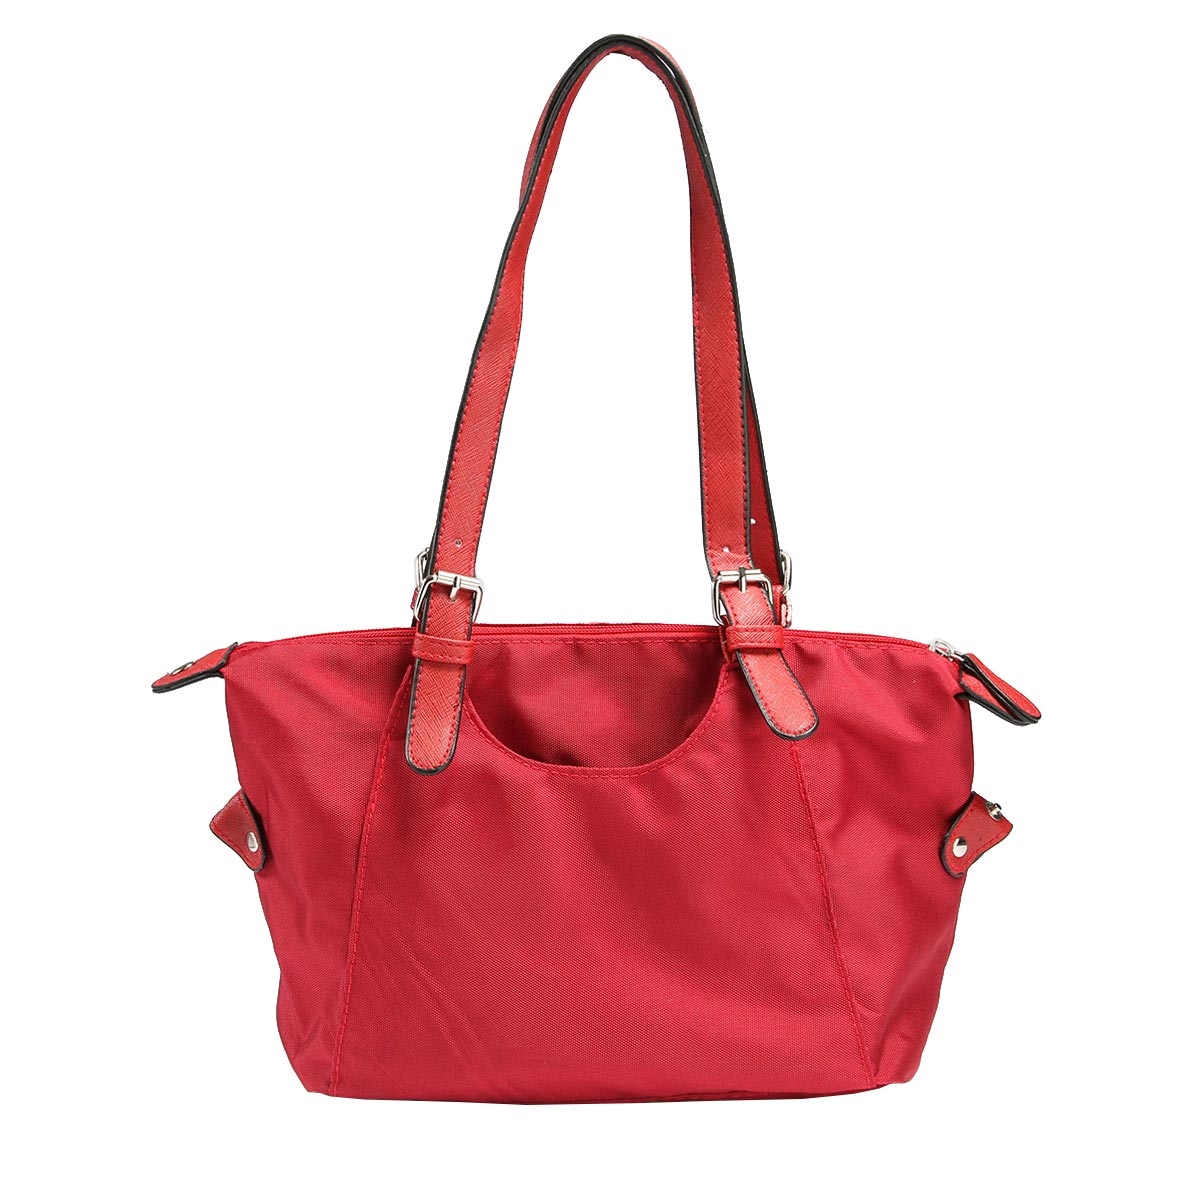 Lds ROOTS73 red shoulder bag